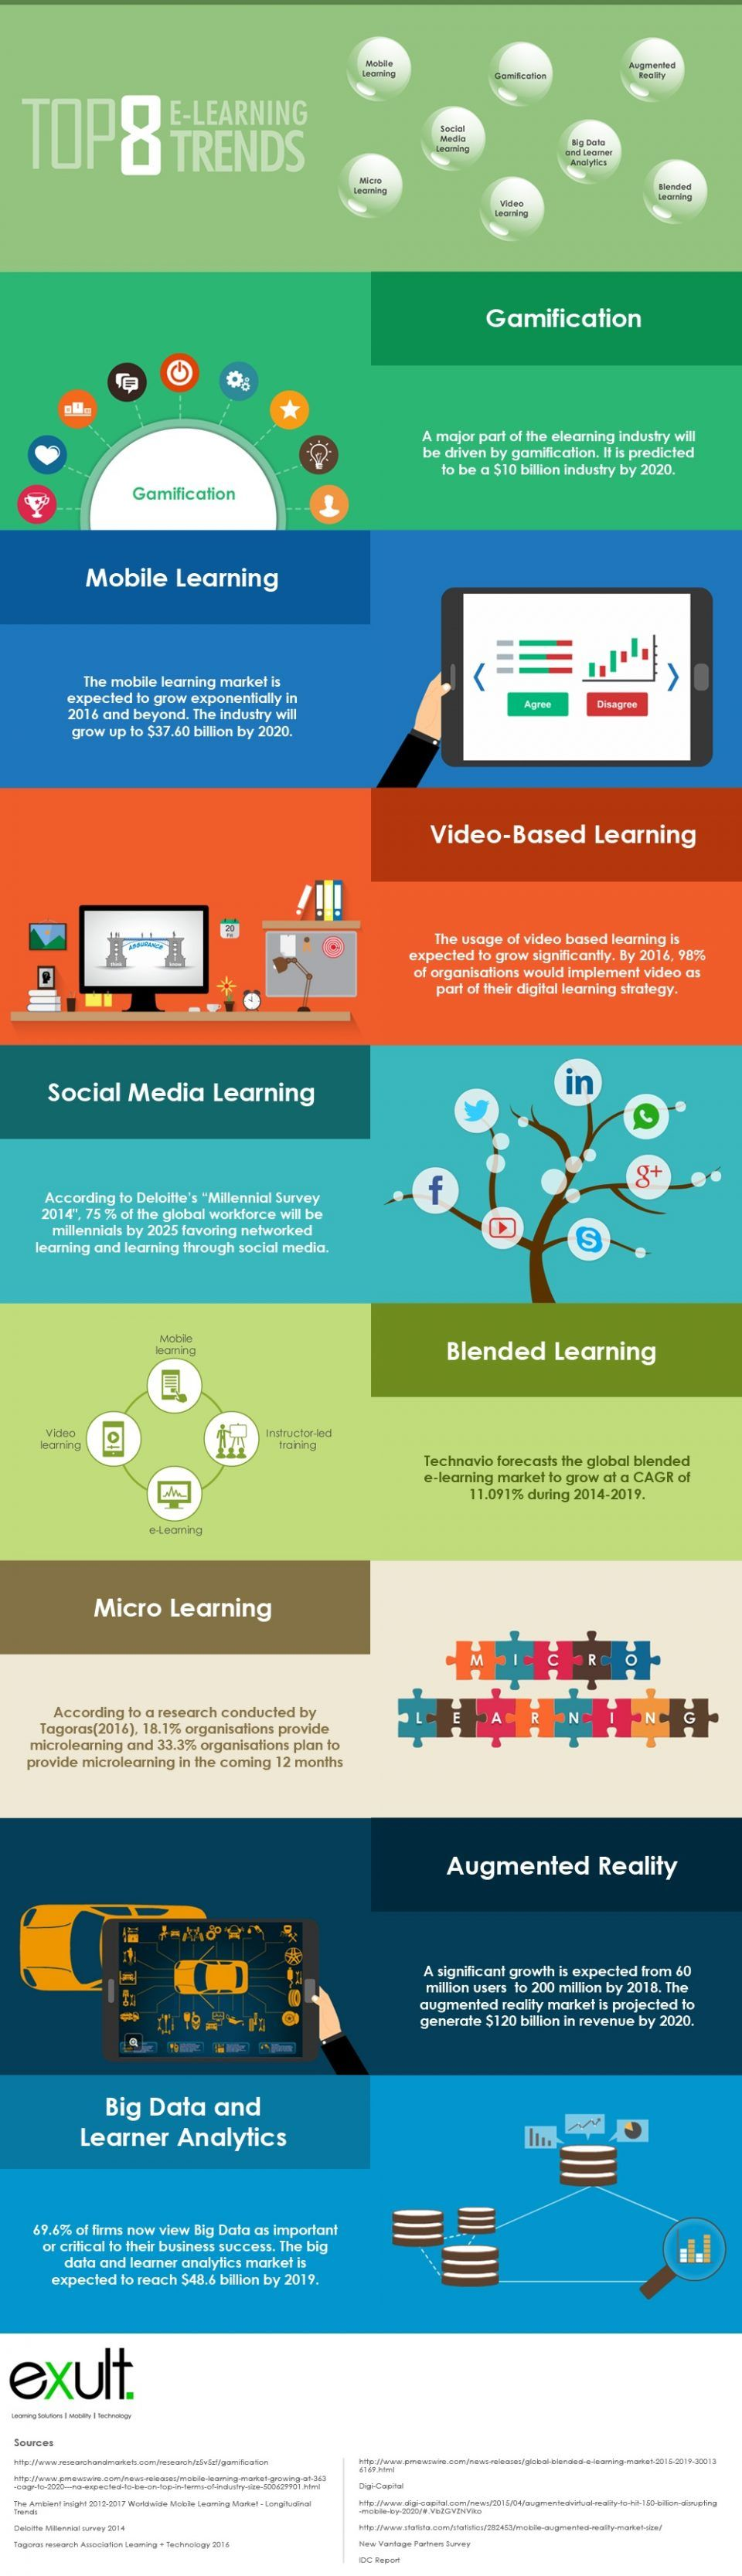 Top 8 eLearning Trends Infographic